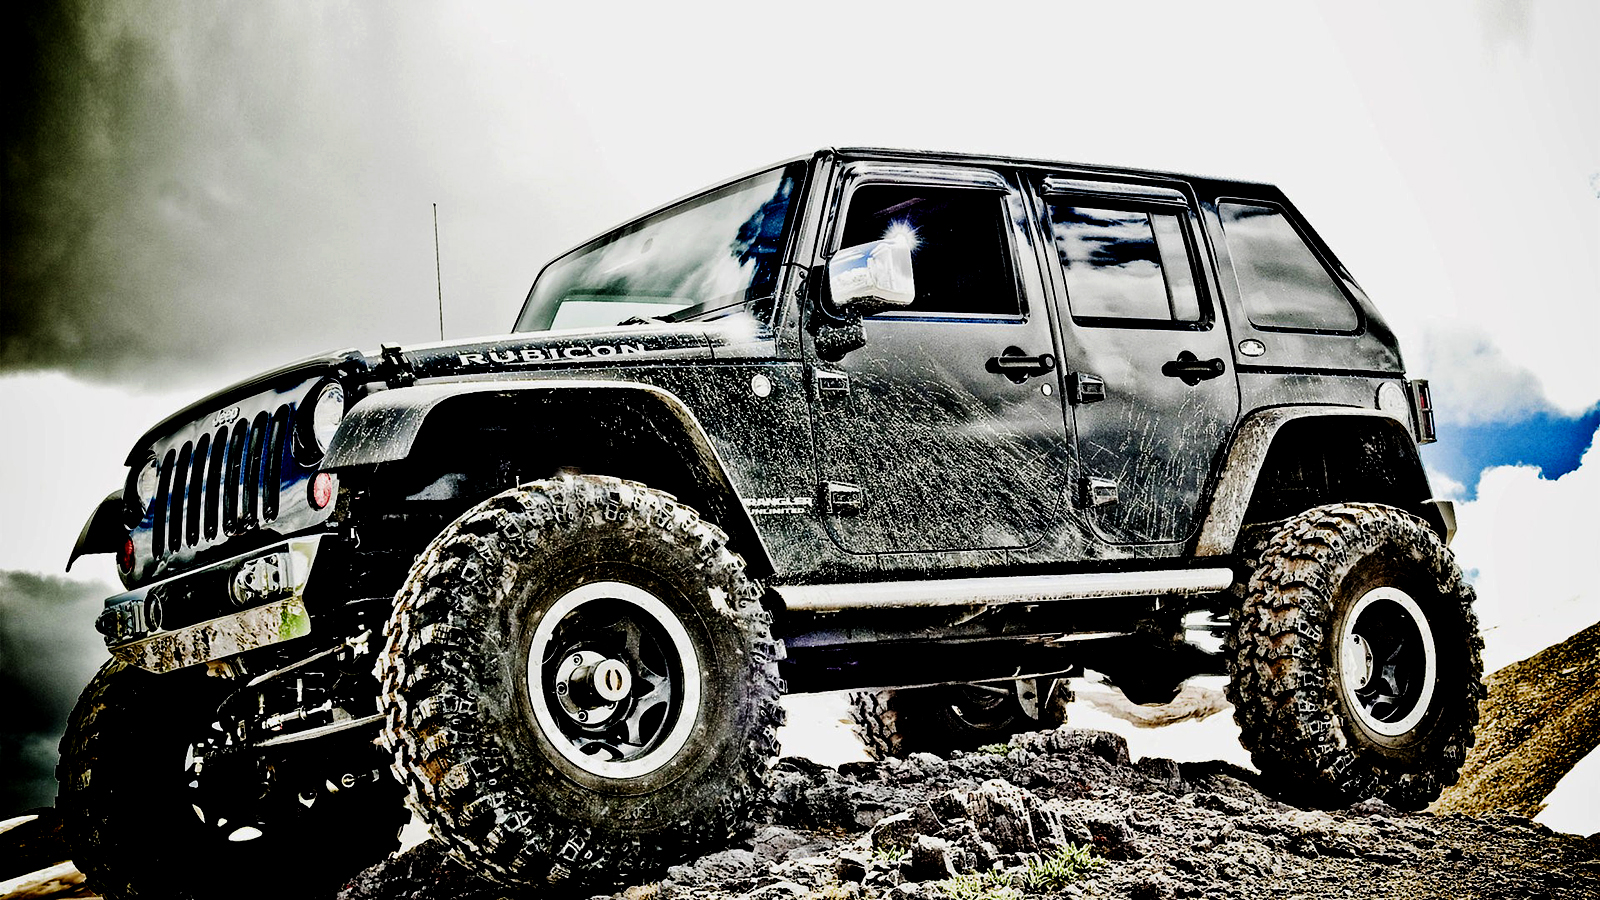 Off Road Jeep Hd Wallpaper >> Jeep JK HD Wallpaper - WallpaperSafari